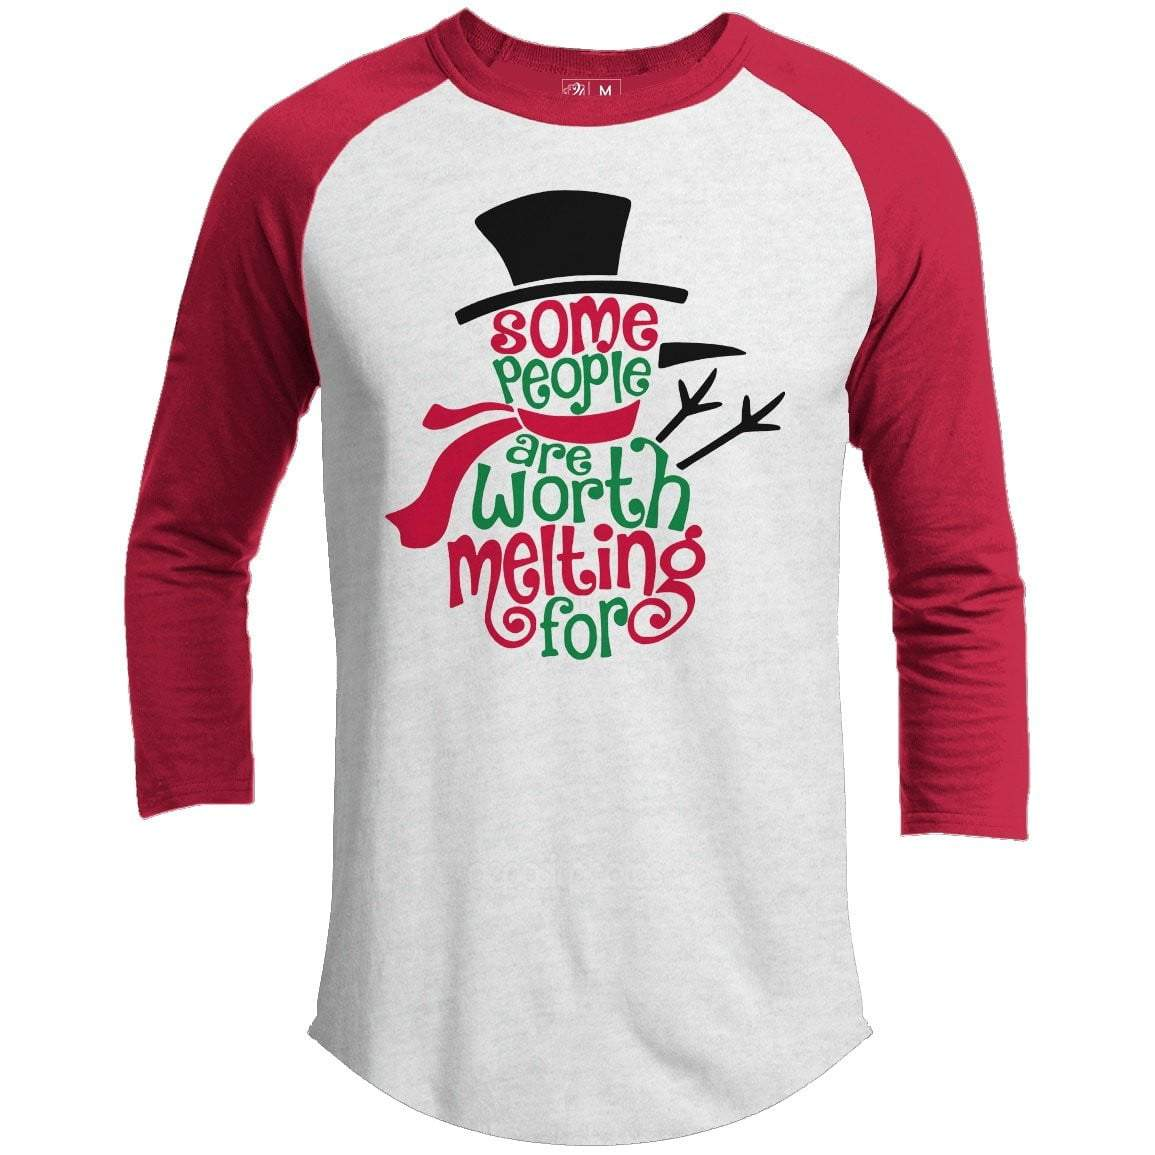 WORTH MELTING FOR Premium Youth Christmas Raglan